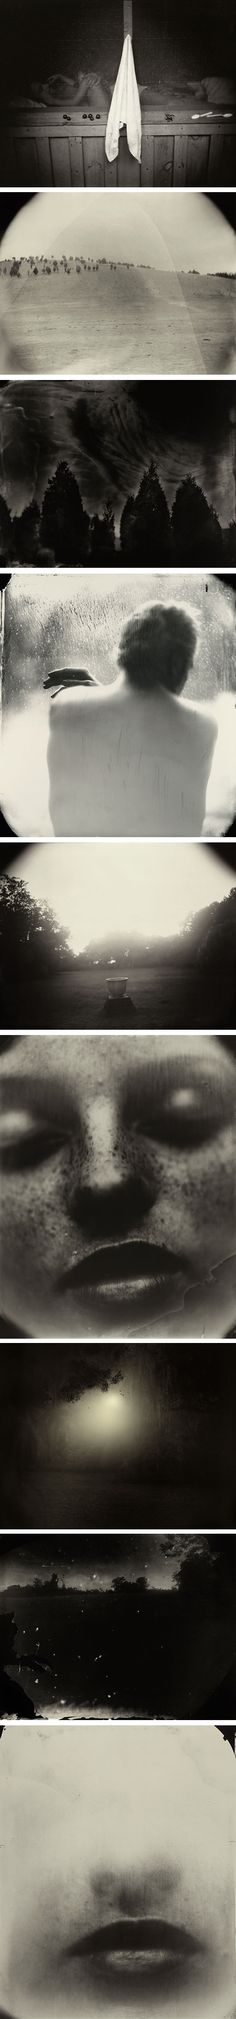 Selected works by photographer, Sally Mann.